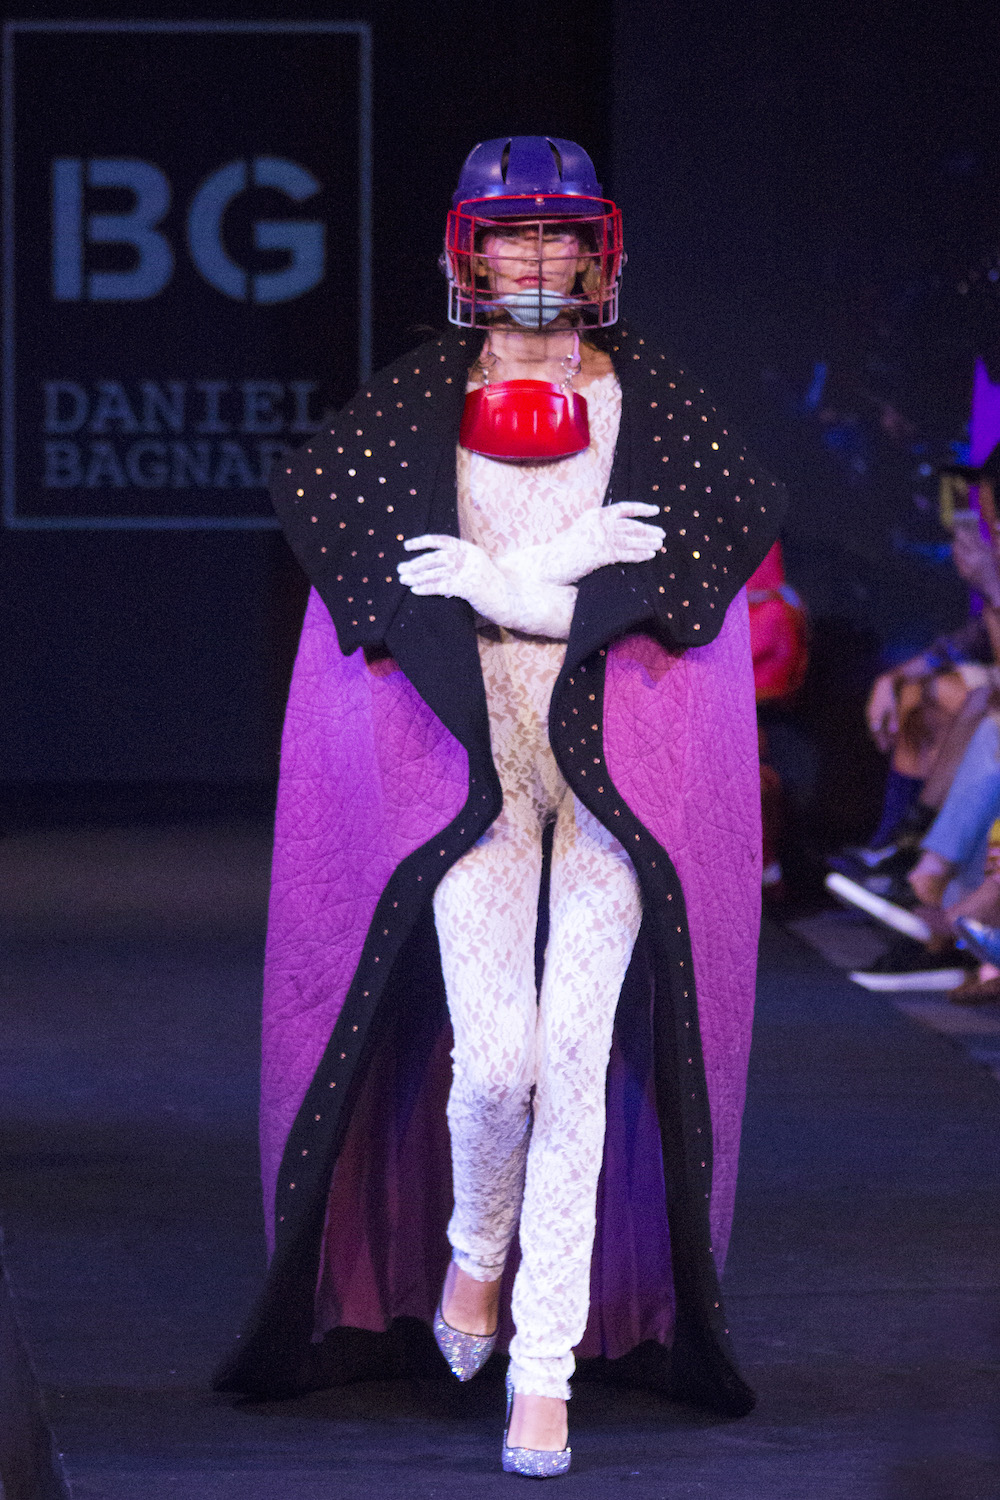 Moda y performance: Daniel Bagnara en Santiago Fashion Week 2018